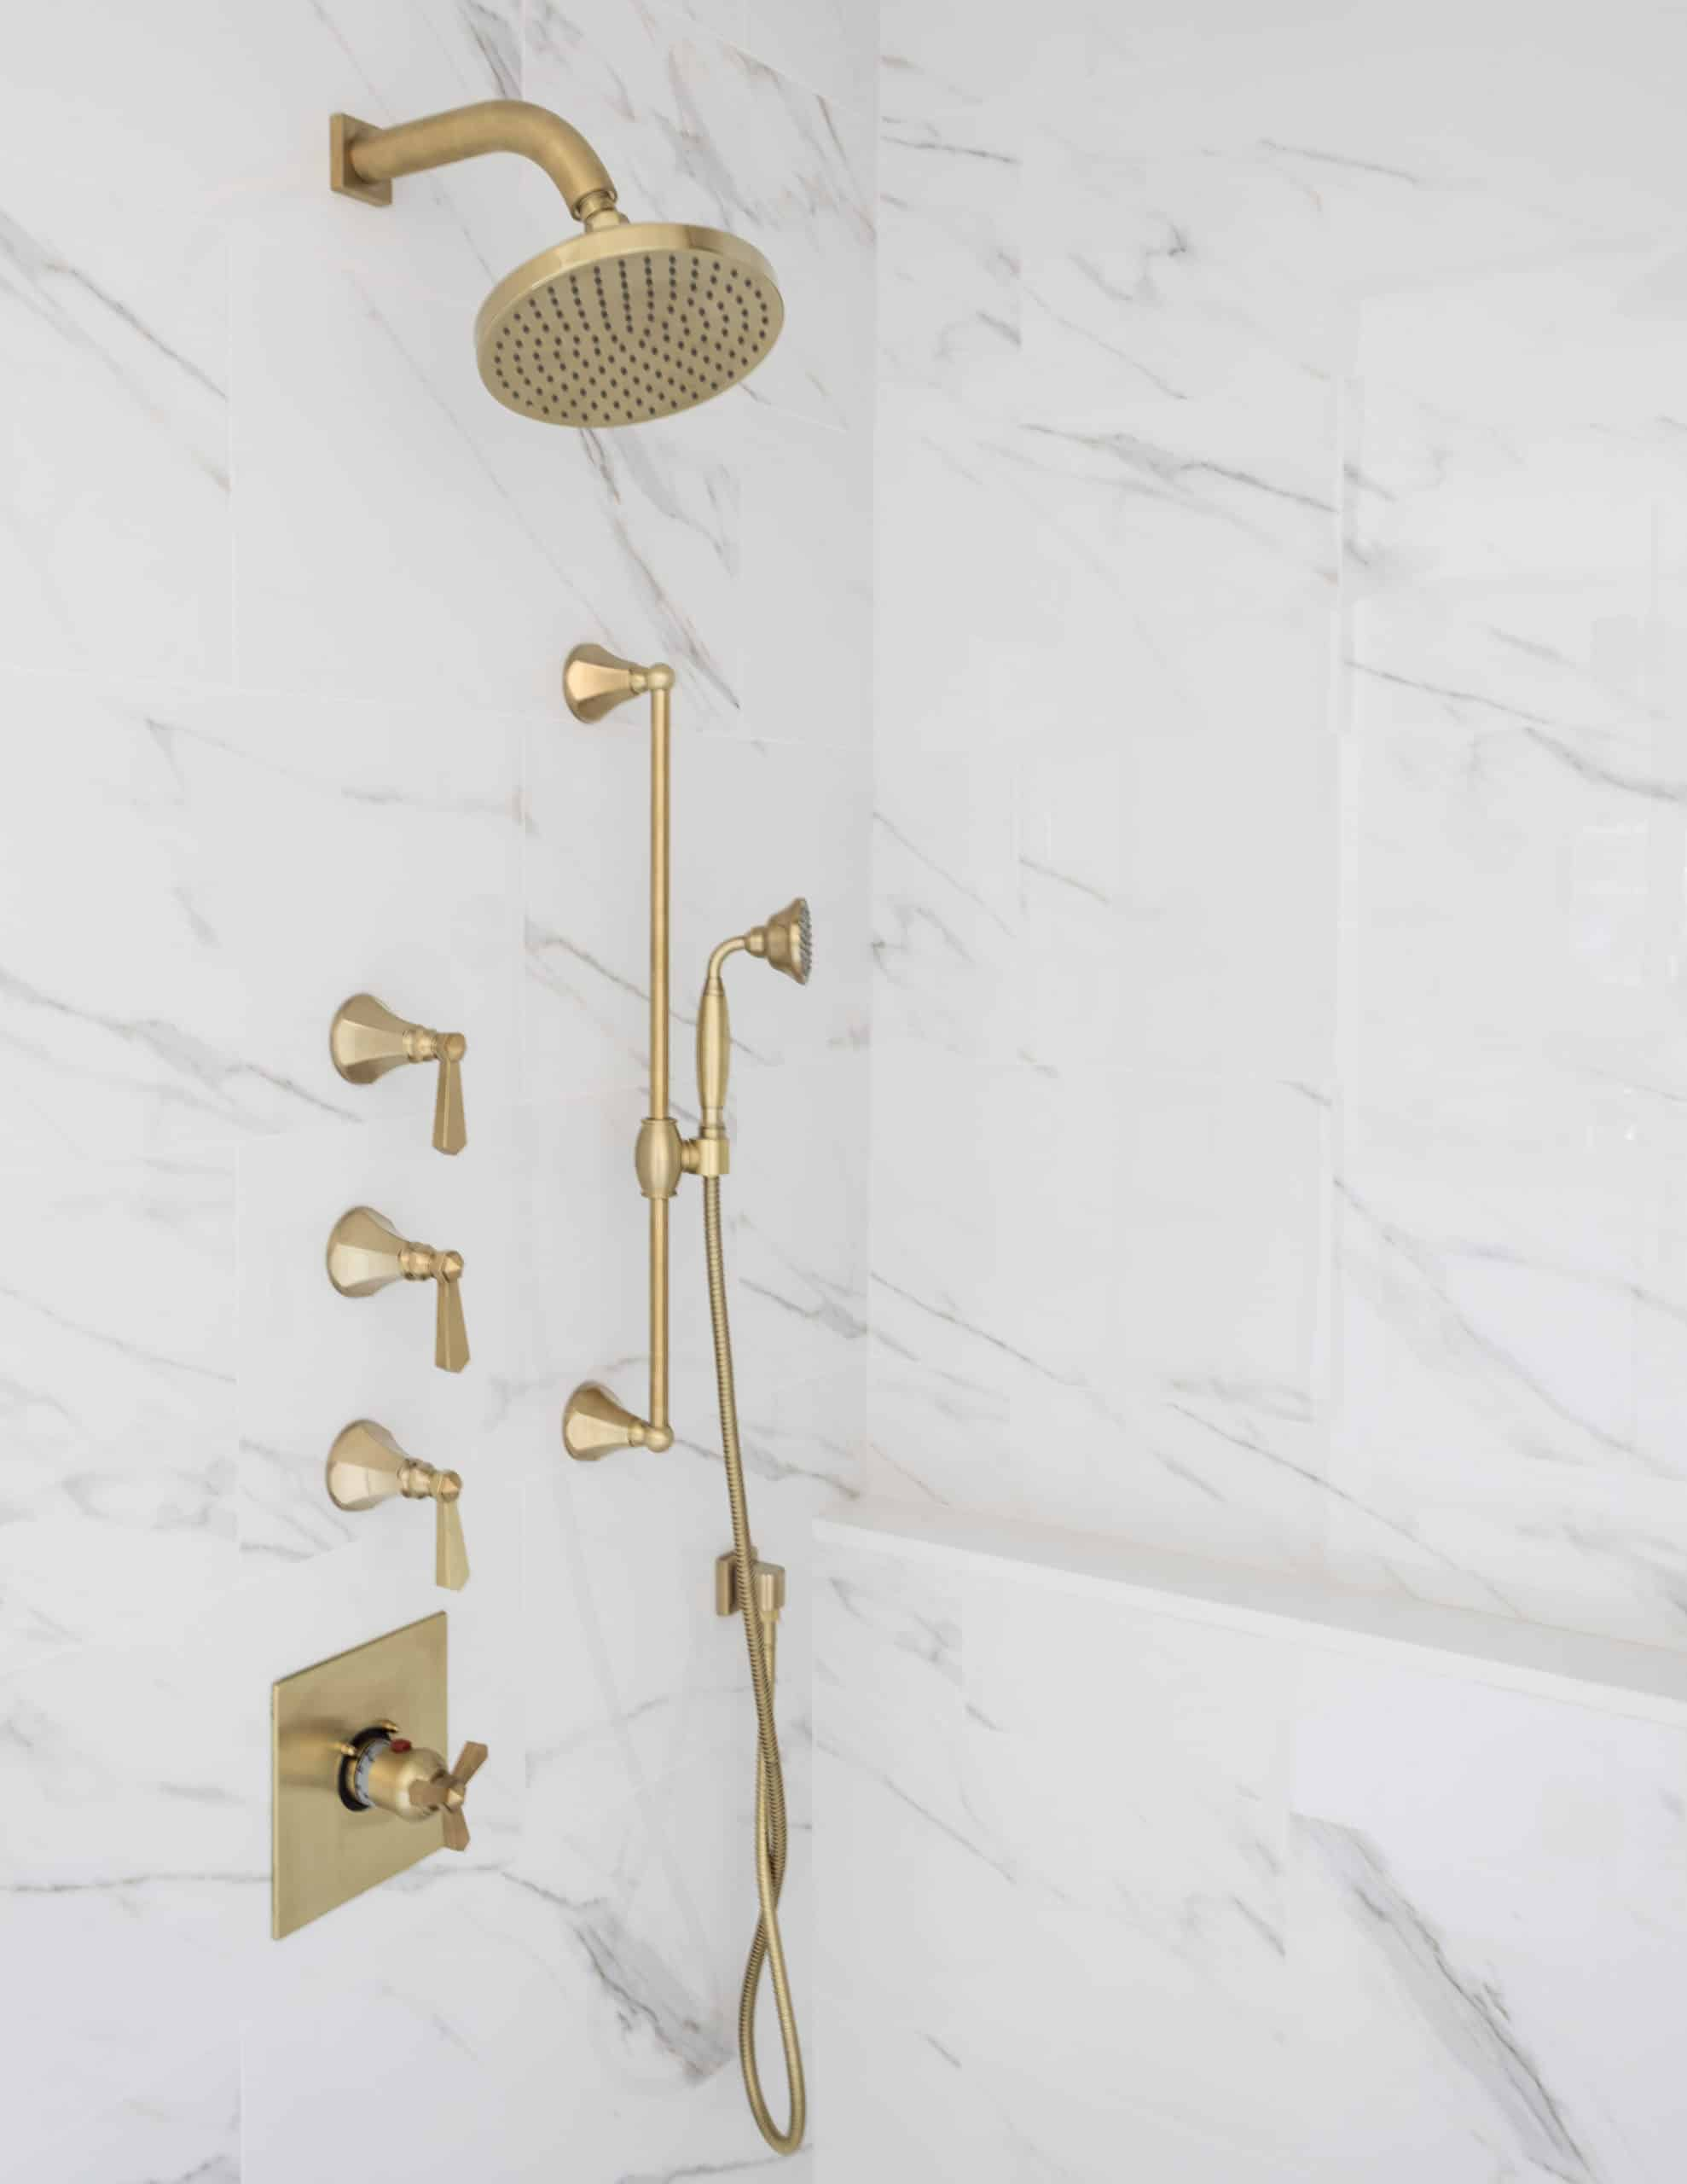 Golden shower faucet on a marble wall